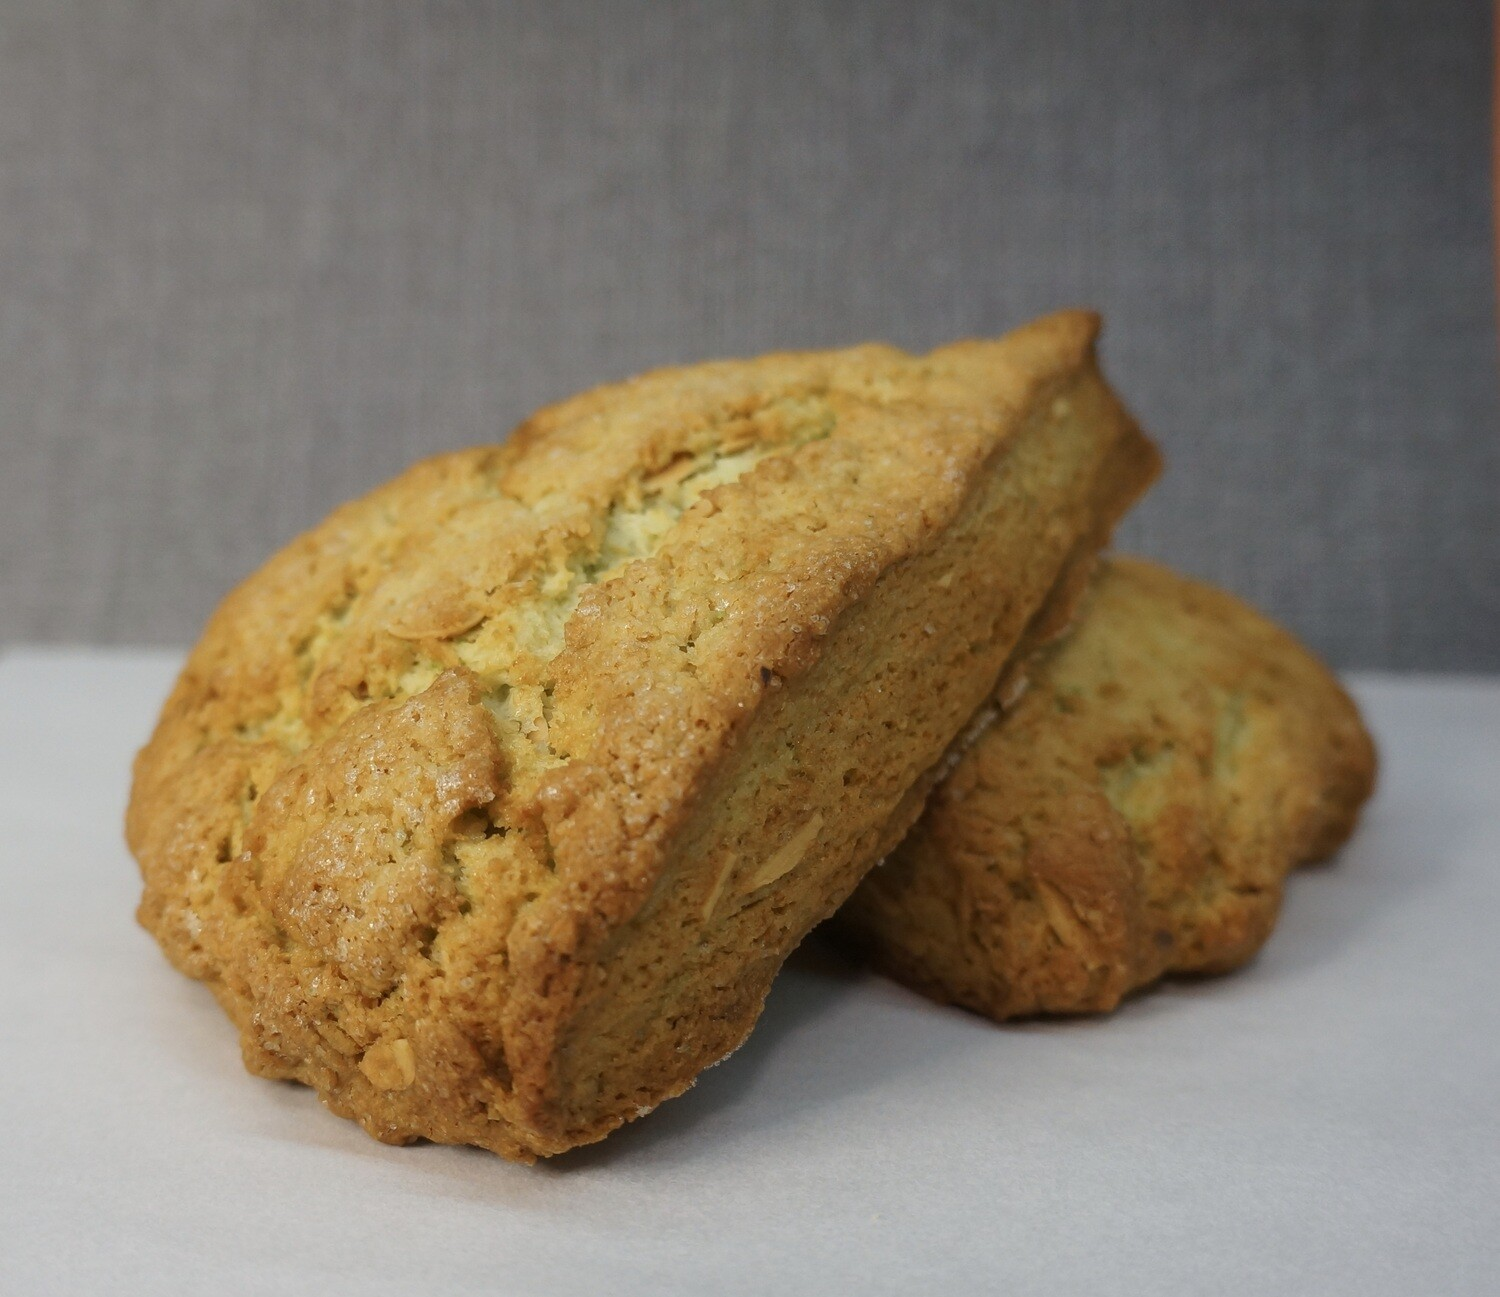 PASTRY - Pistachio Almond Scone - 6 count *12hrs preorder required